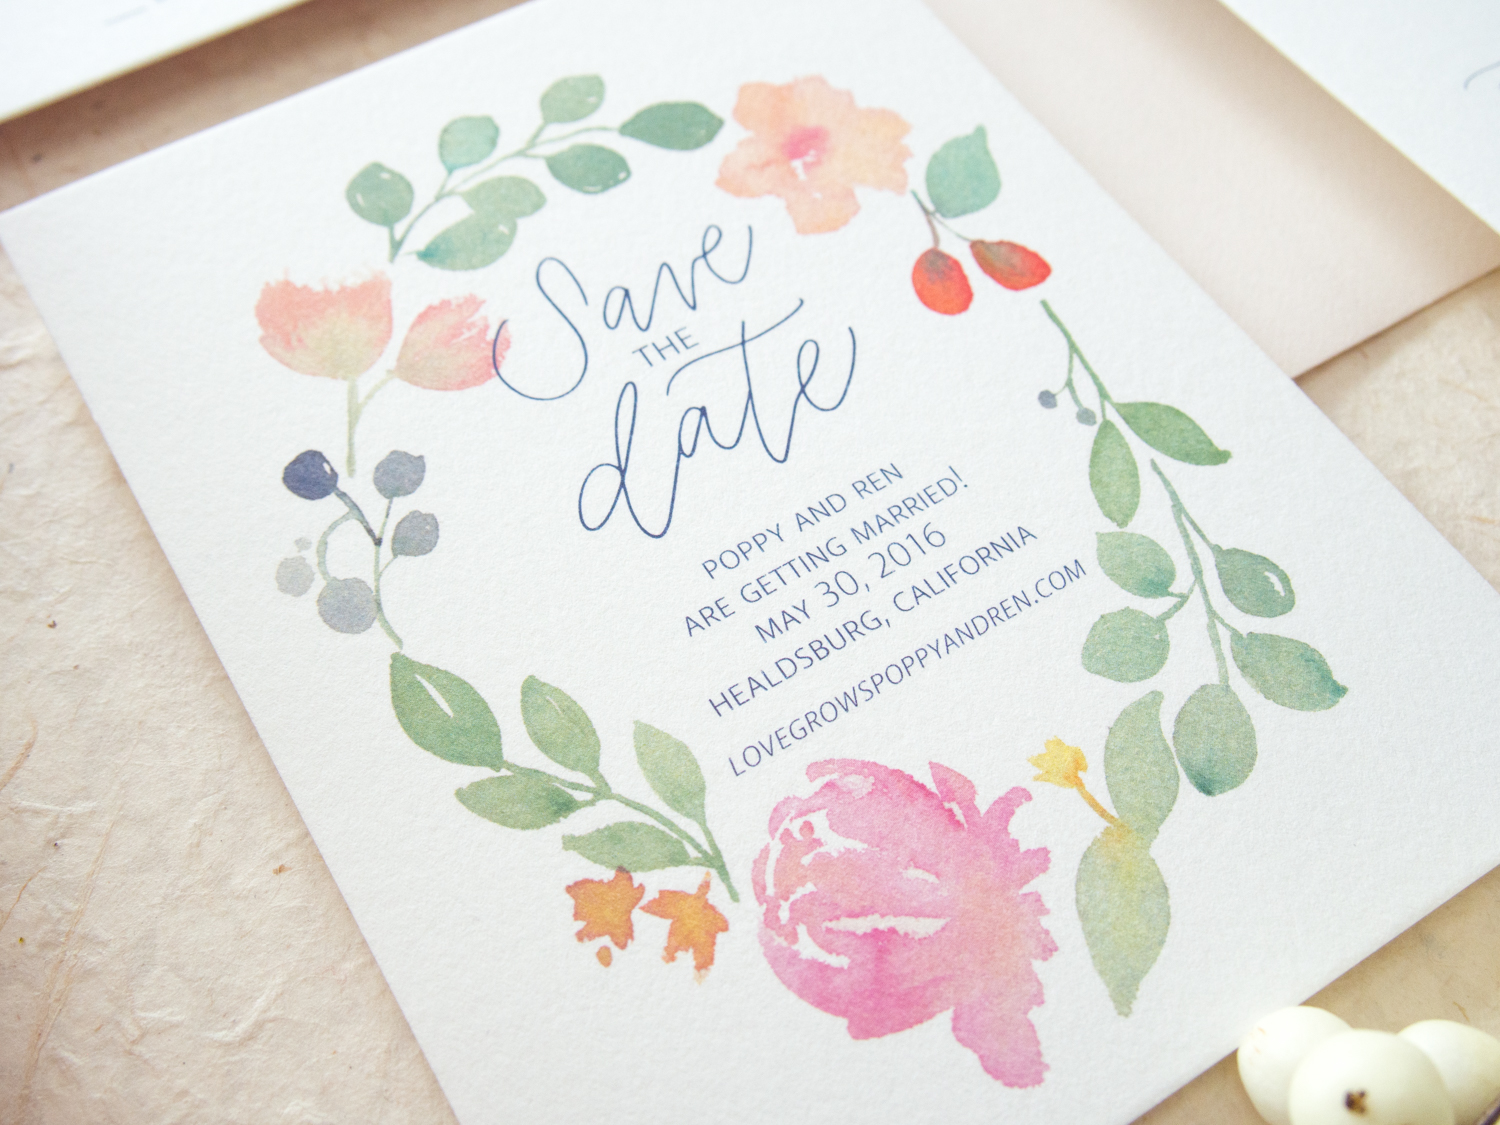 Romantic Floral Save the Date from Bright Room Studio